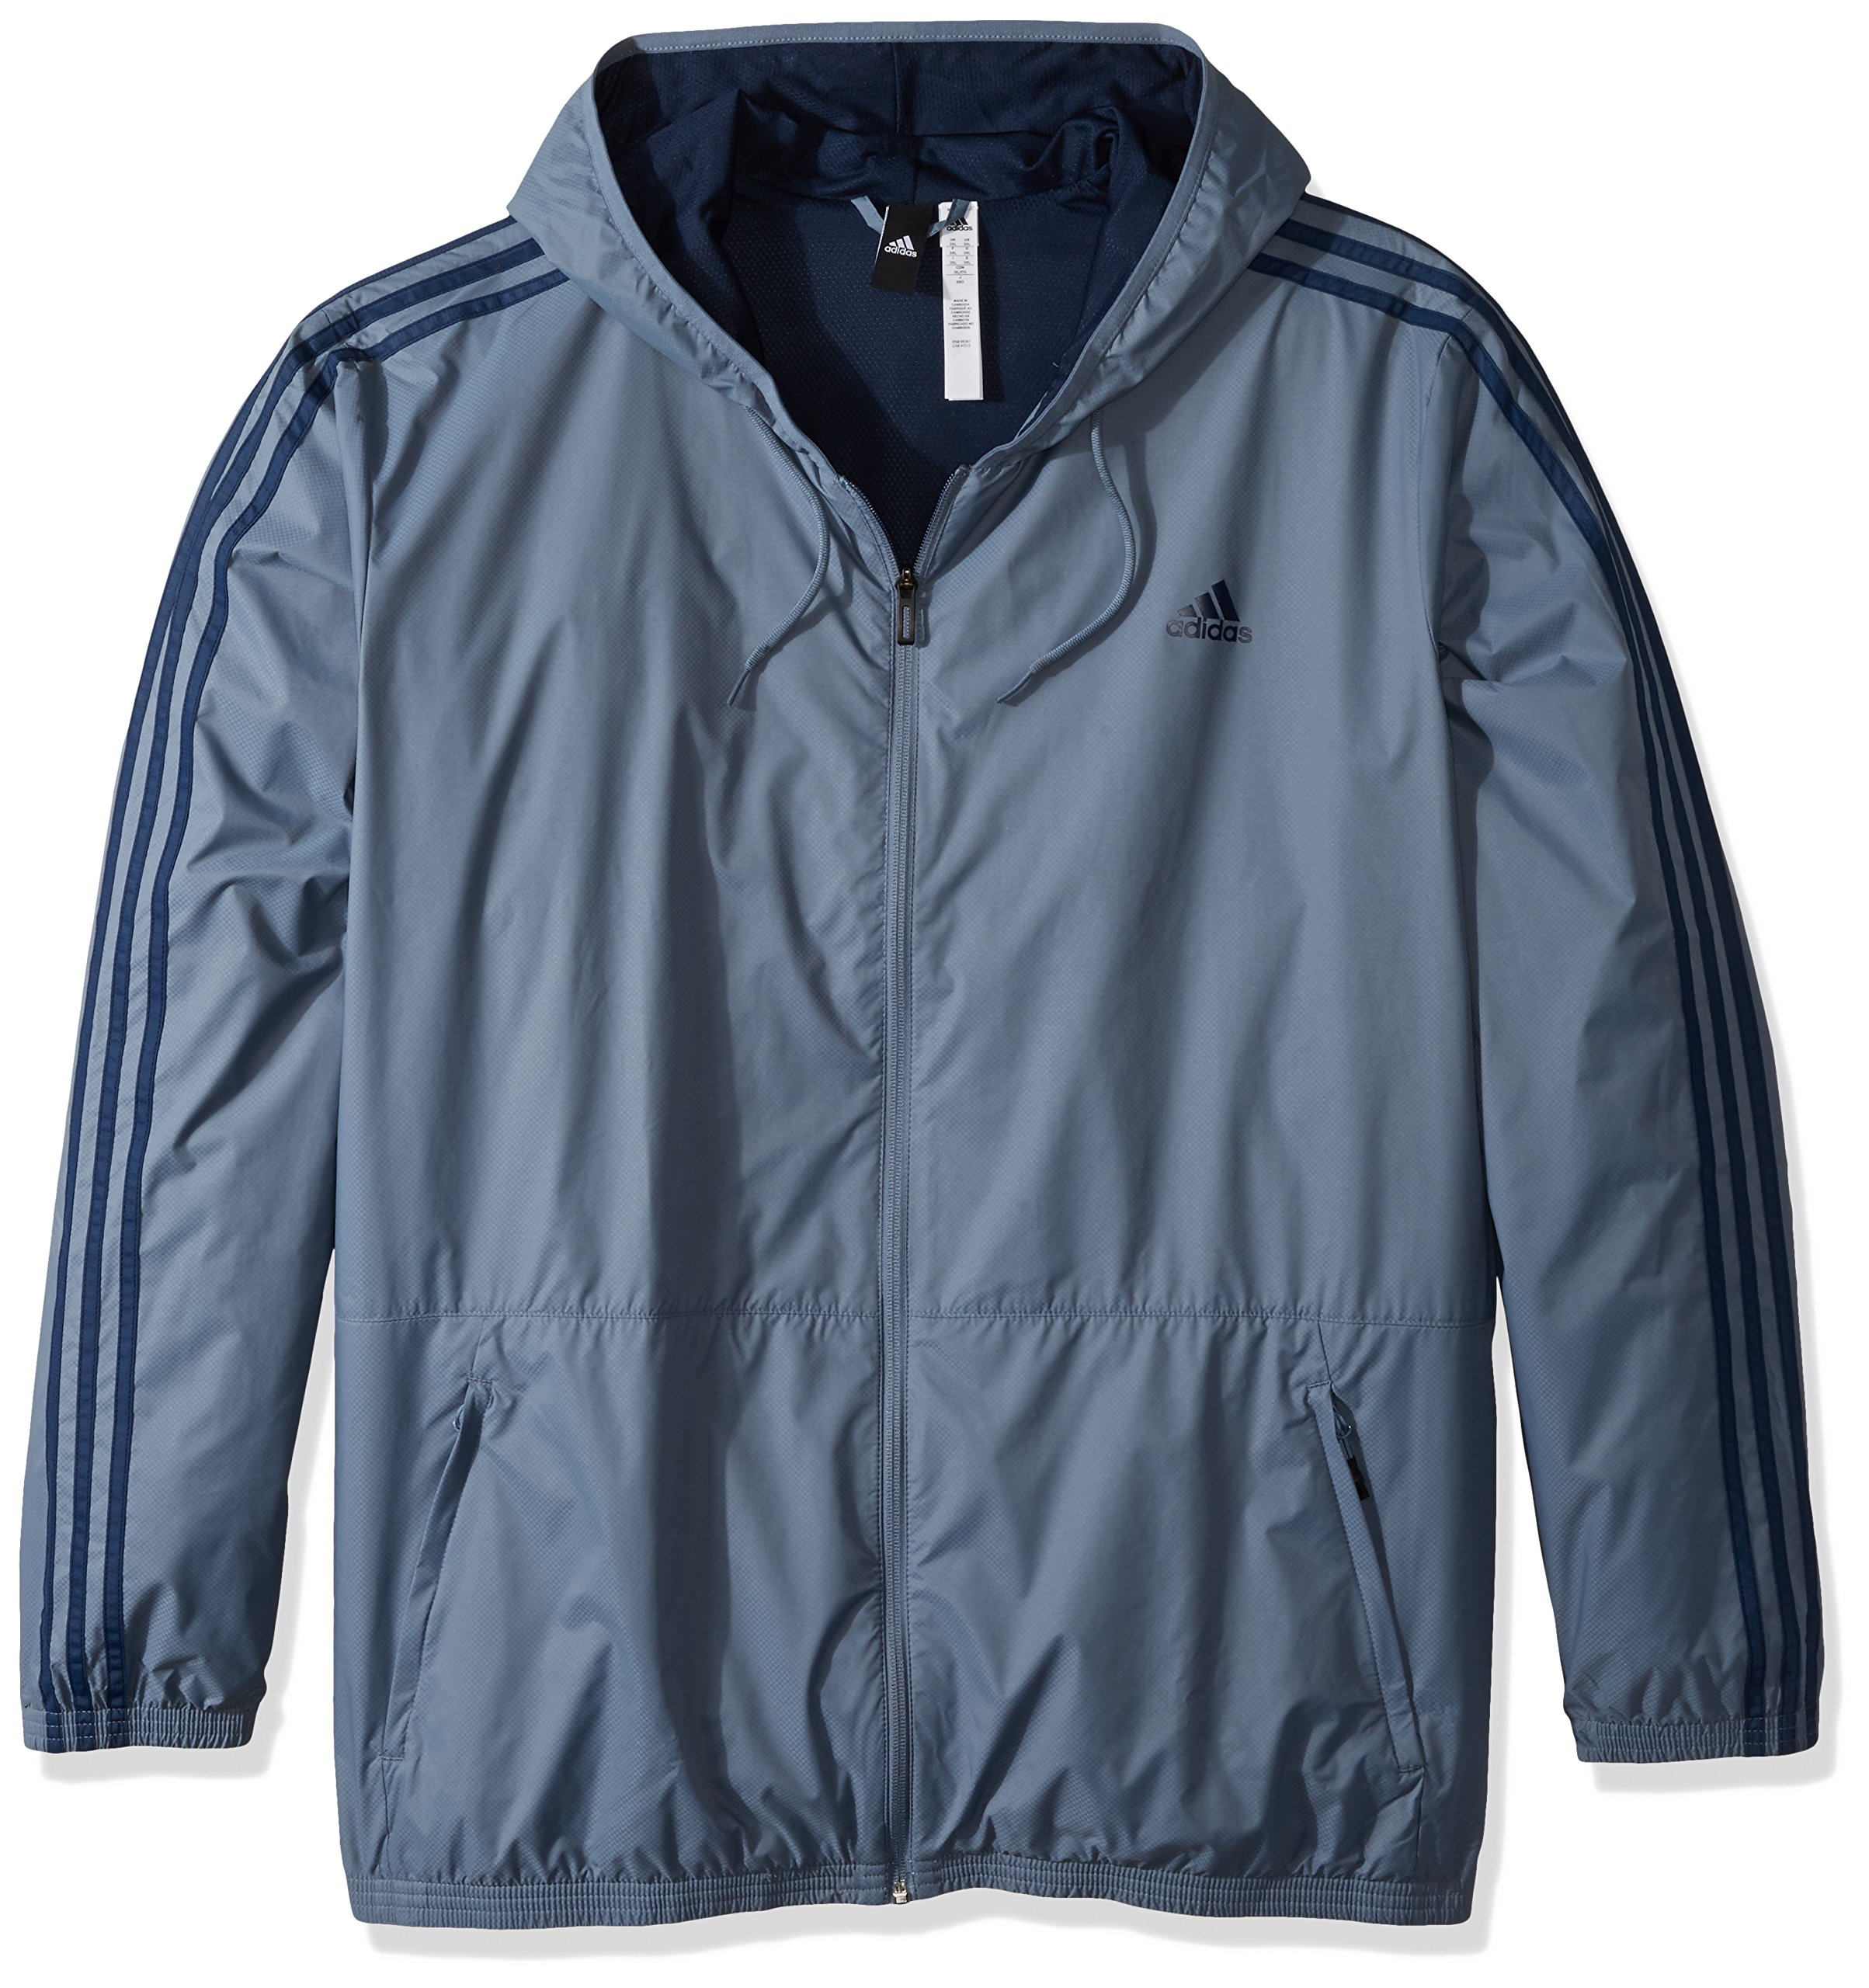 adidas Men's Essentials Wind Jacket, Raw Steel/Collegiate Navy, X-Large by adidas (Image #1)